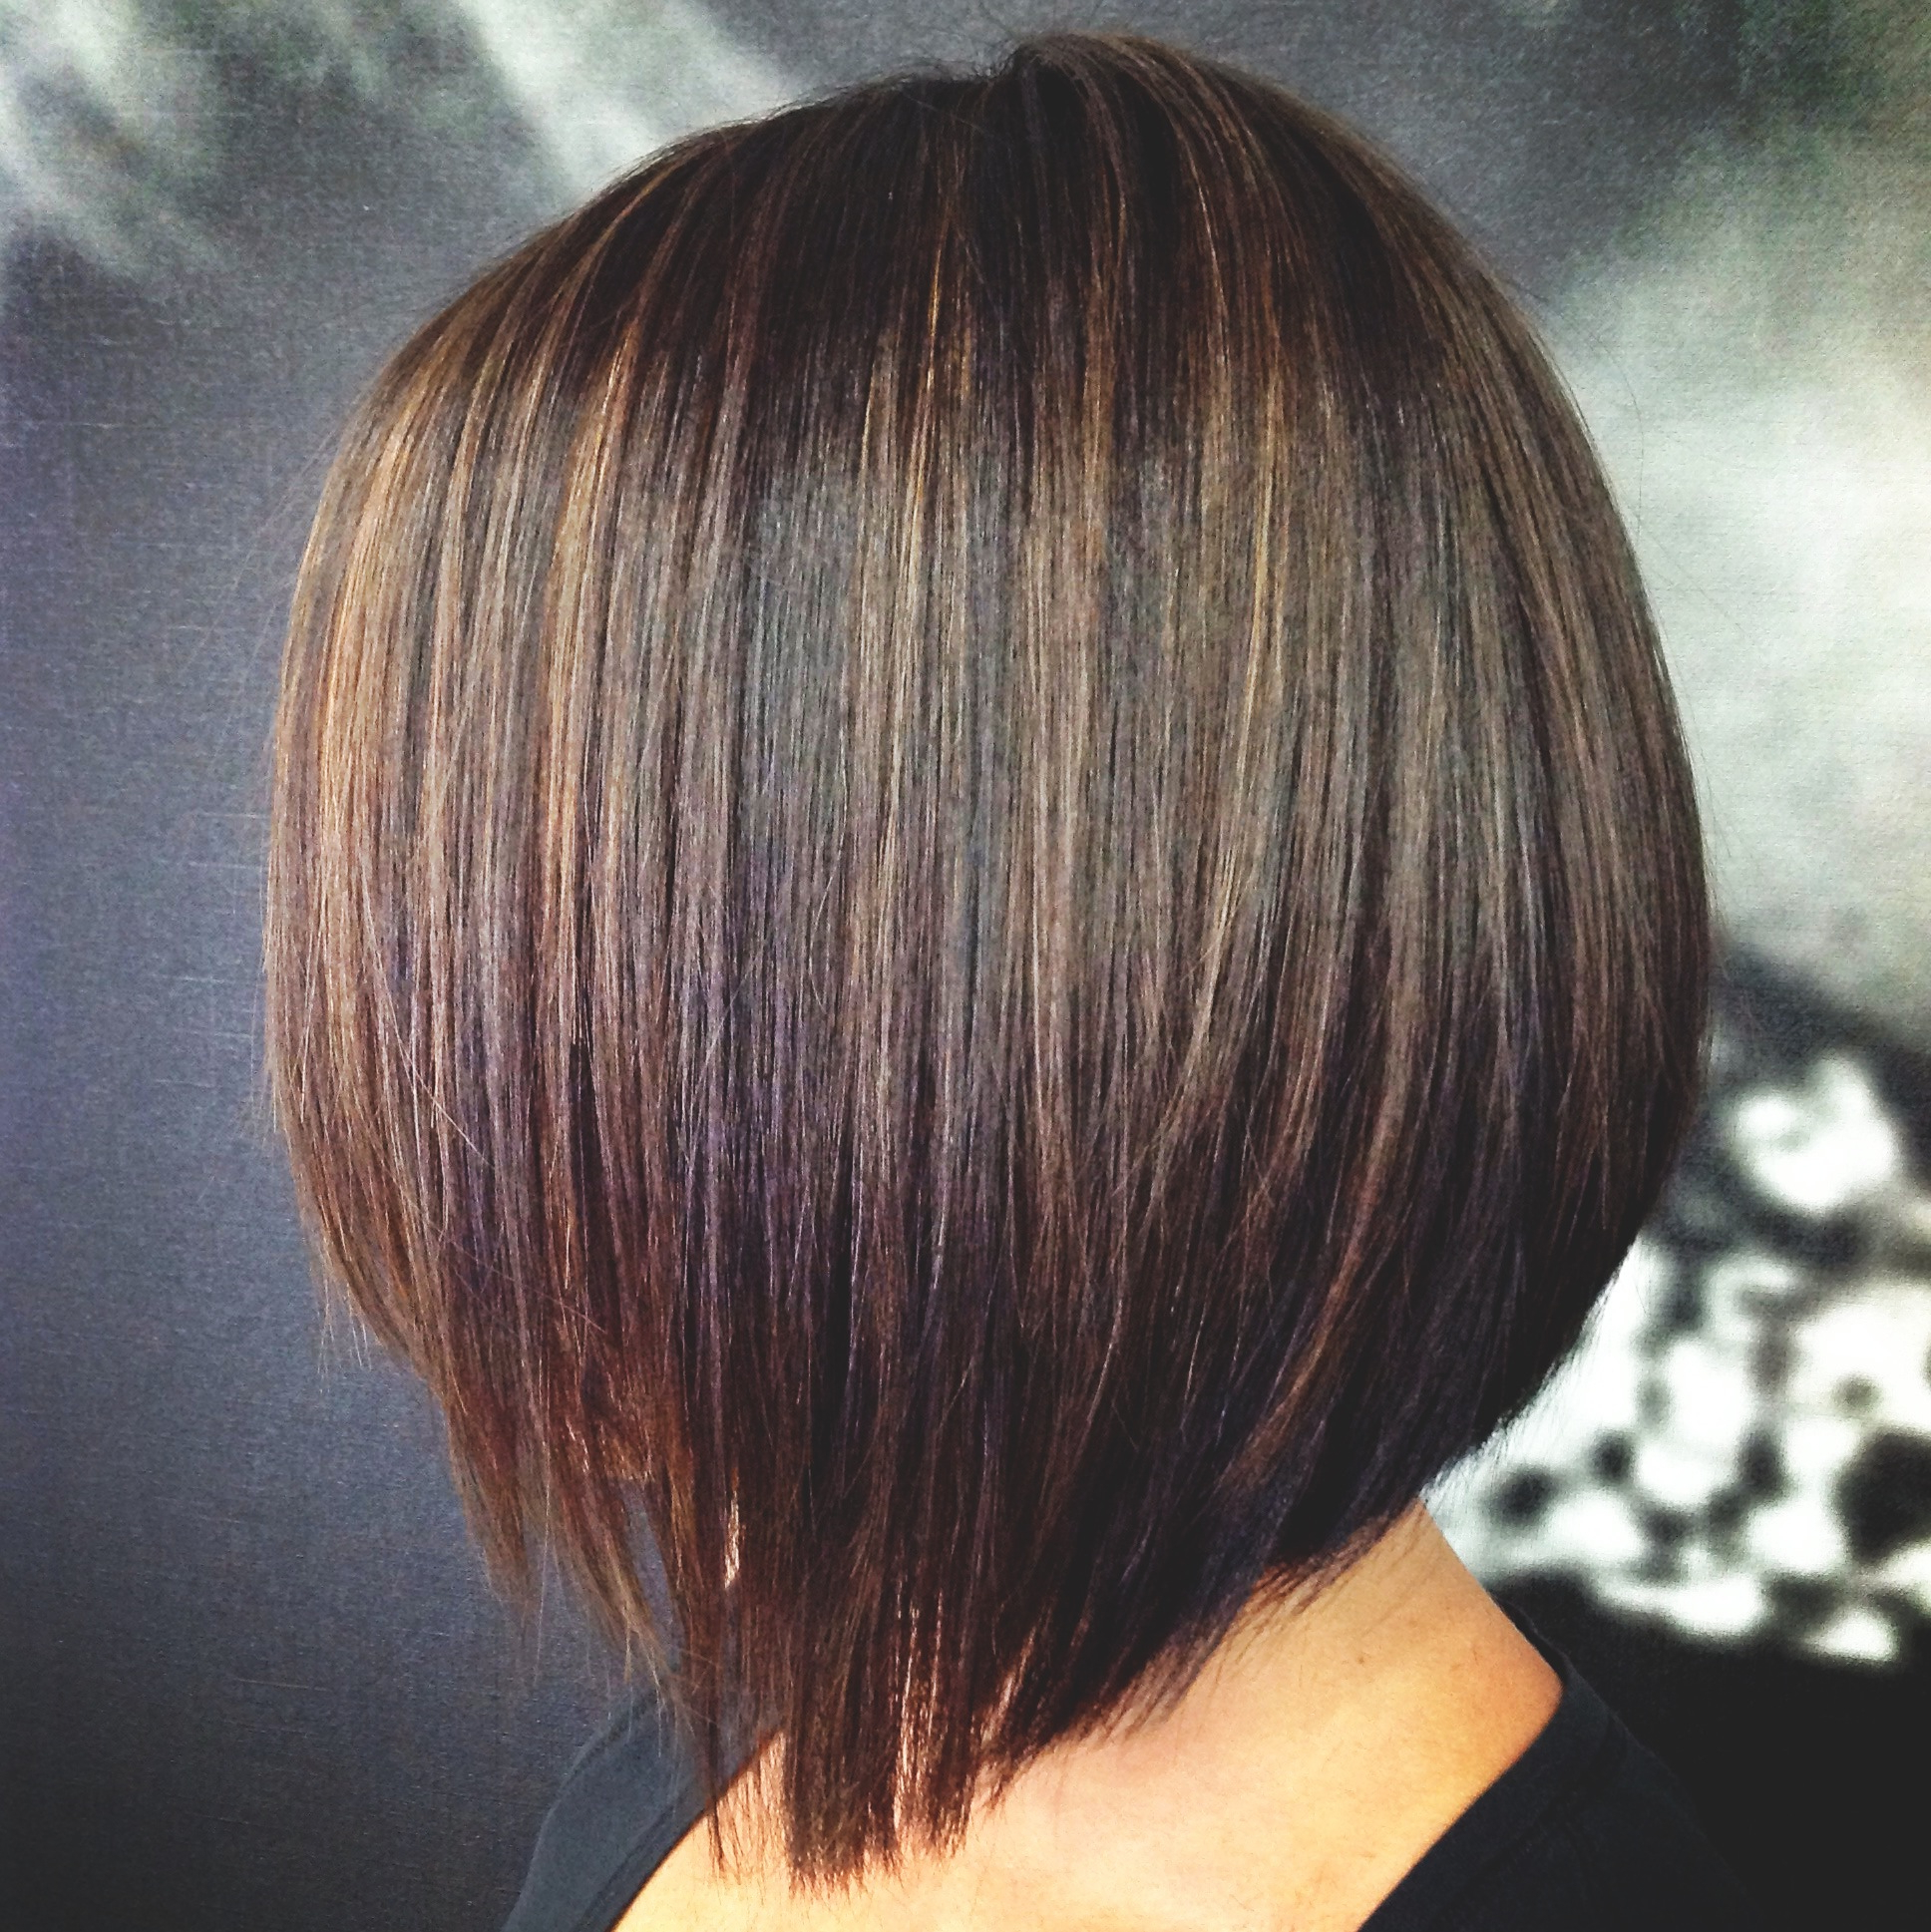 Remarkable Caramel Bob Hairstyles With 20 Short Hairstyles For Girls For Short Curly Caramel Brown Bob Hairstyles (View 14 of 20)